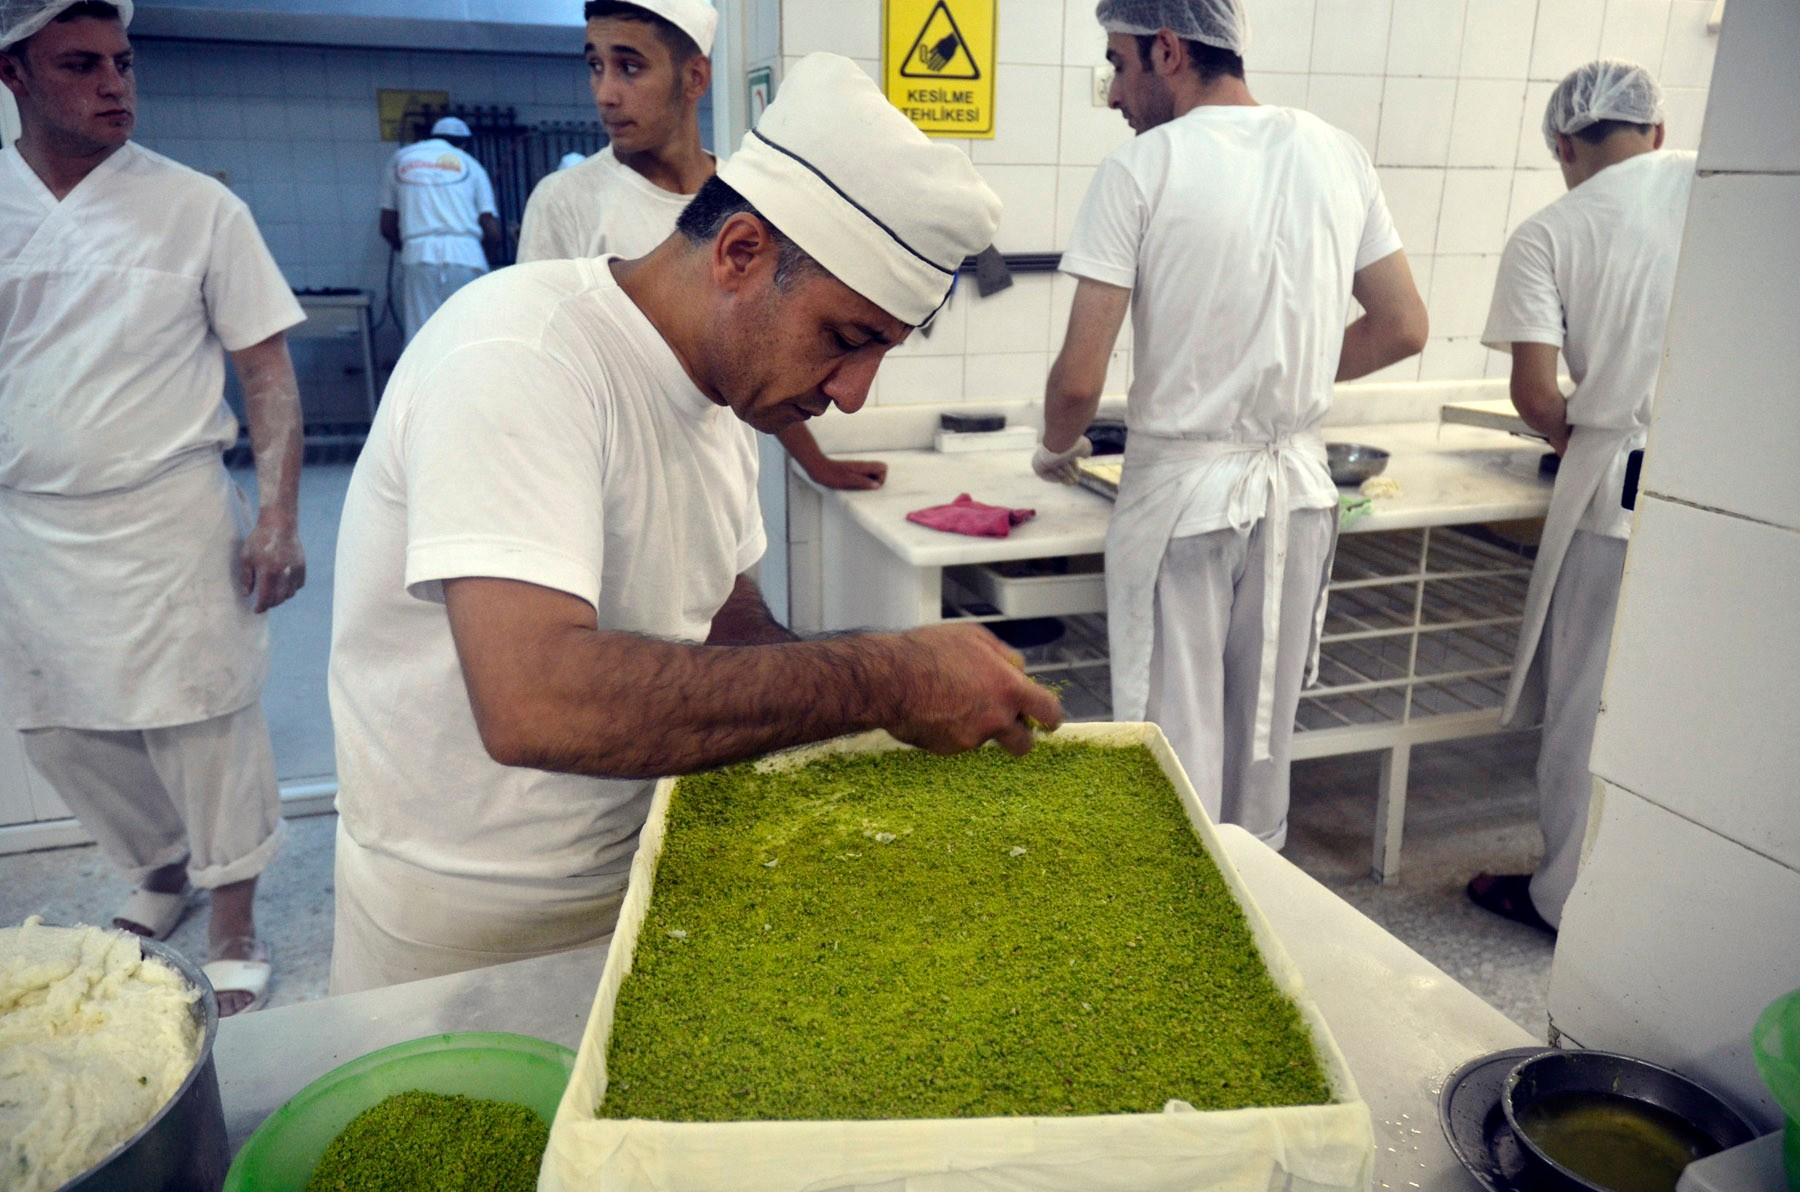 A man sprinkles pistachio over a layer of cream to make the filling